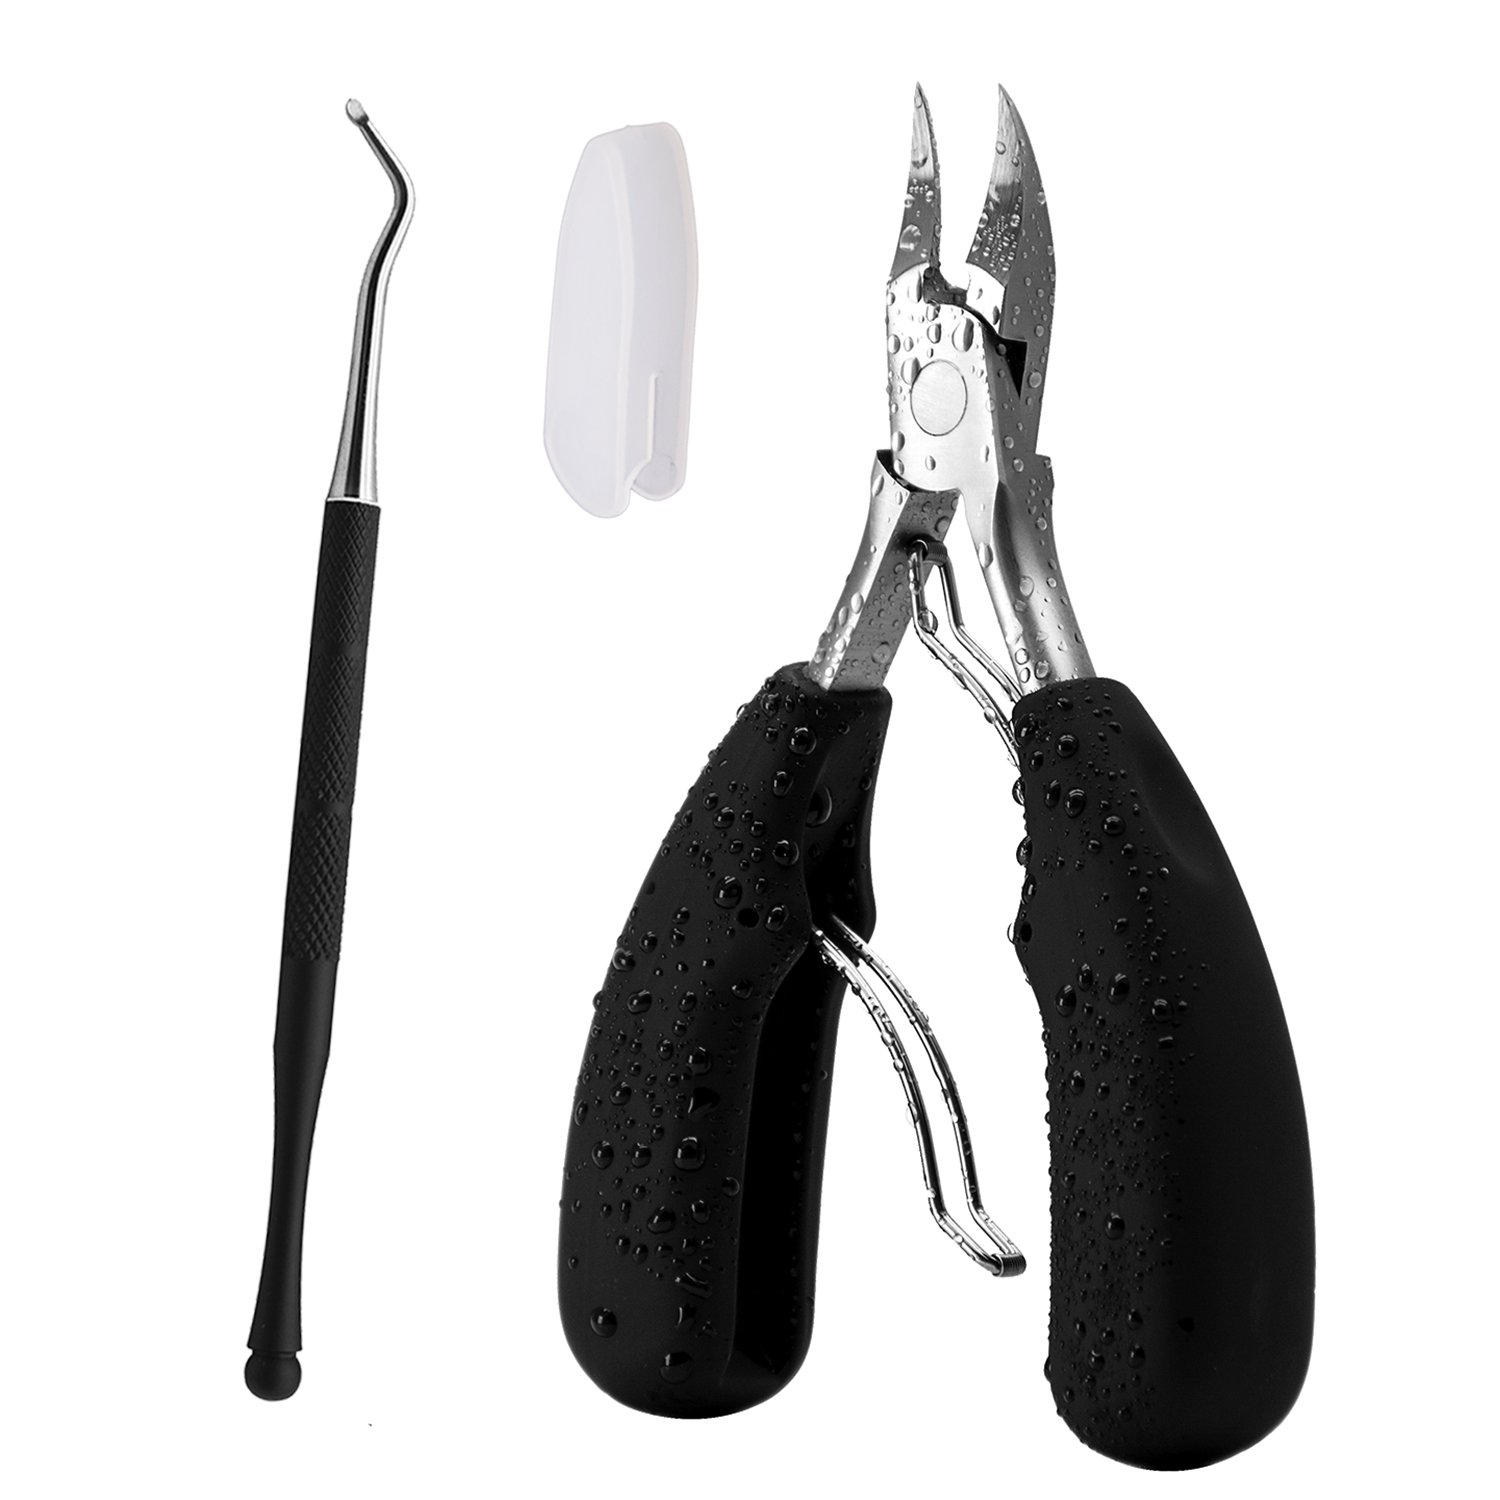 Toenail Clippers for Thick or Ingrown Toenails, Heavy Duty Soft Grip Toenail Clipper Manicure Set, Podiatrist Toenail Clipper with Cleaner File Kit